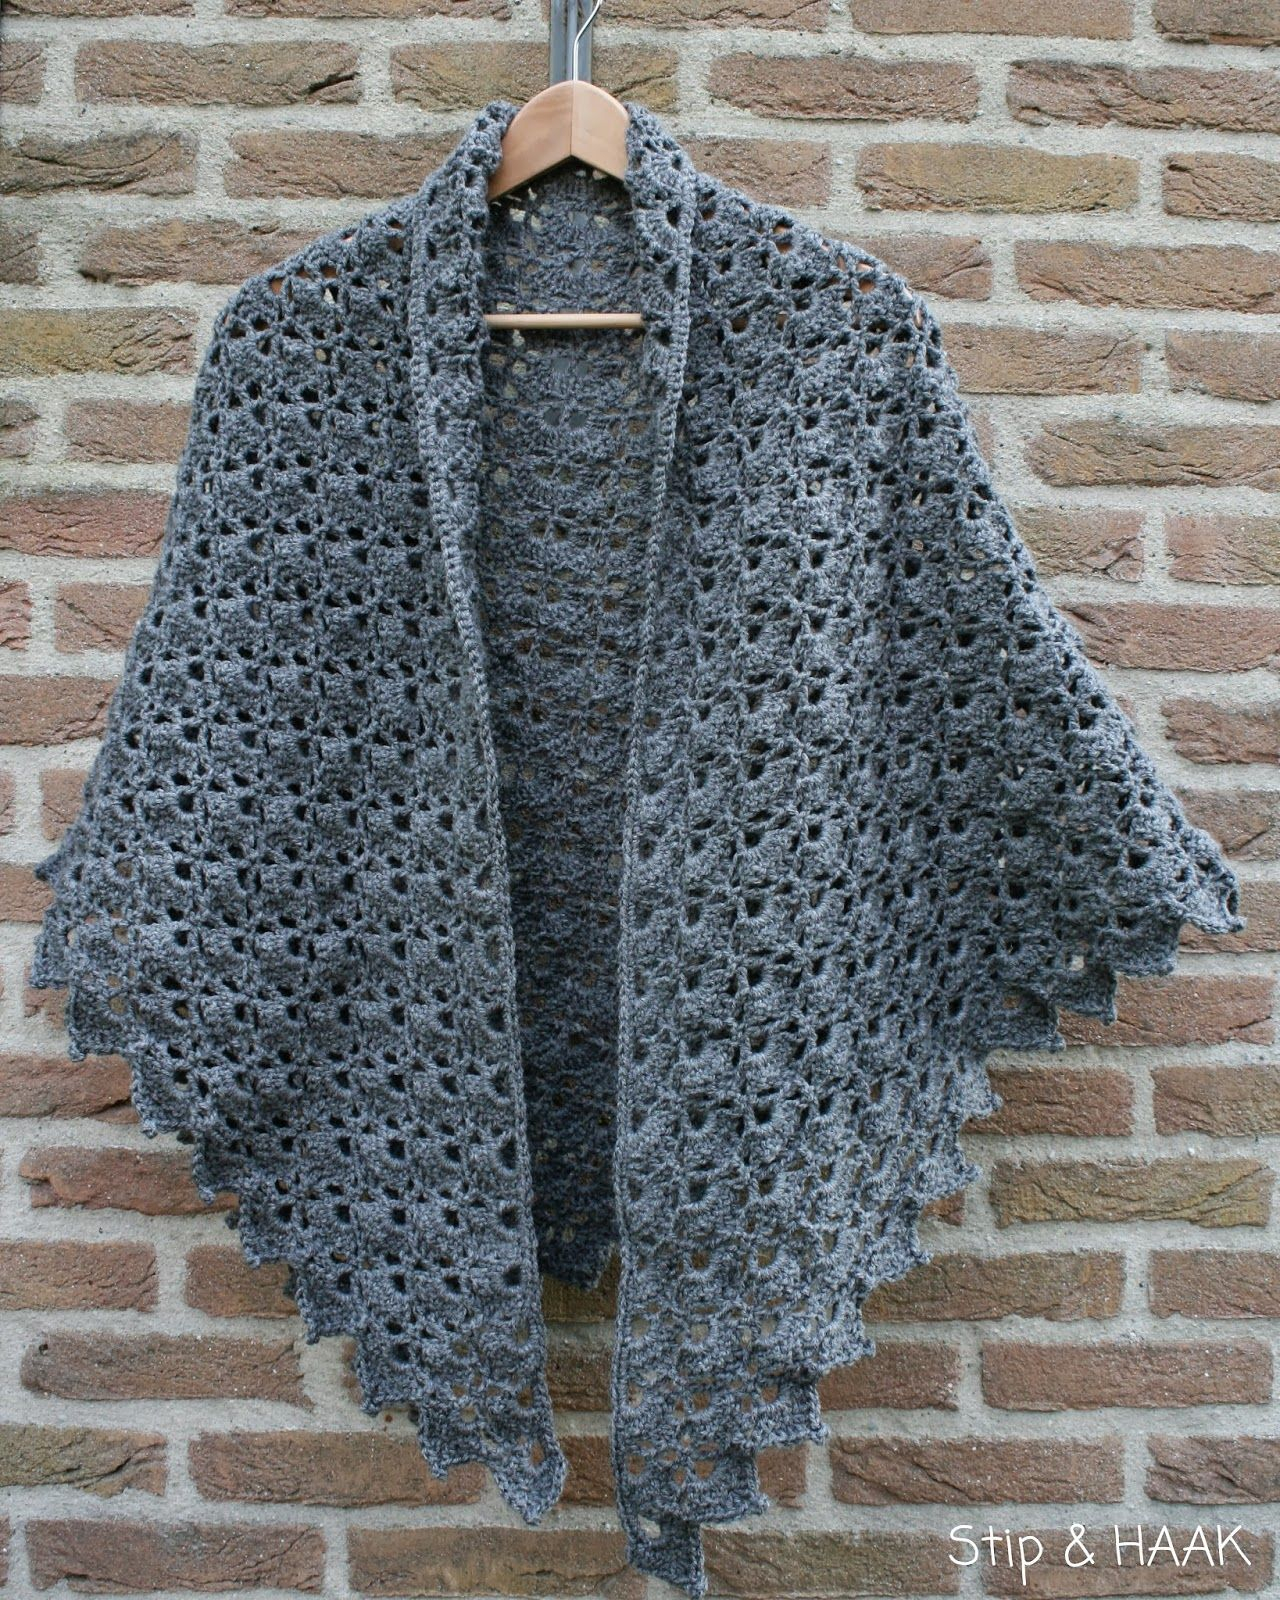 Crochet Shawl Free Pattern Downloaded Crochet Clothing